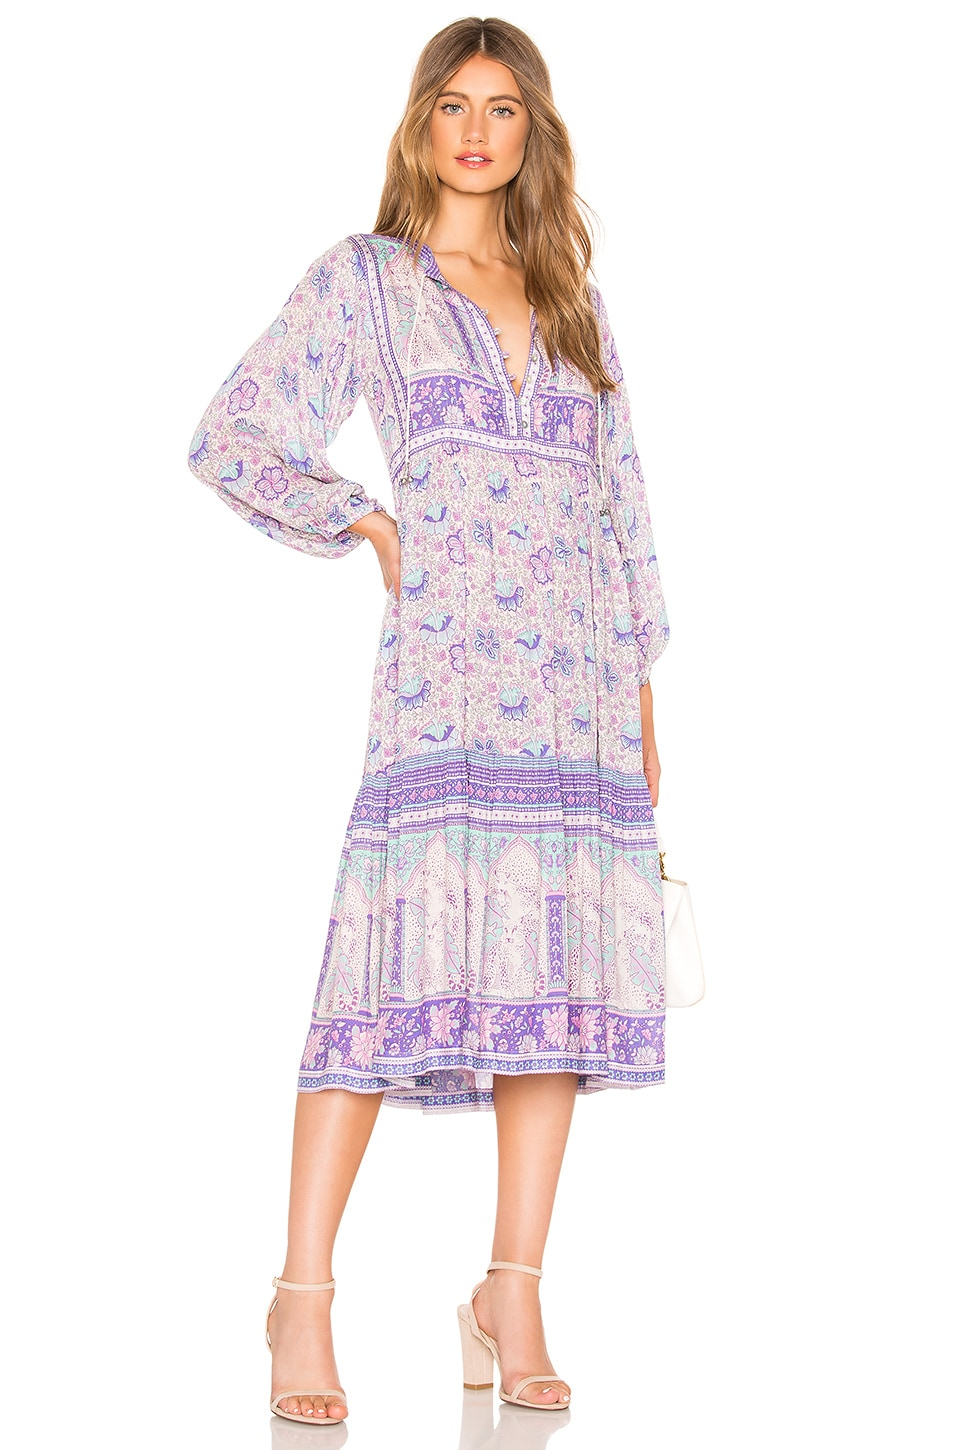 SPELL & THE GYPSY COLLECTIVE Poinciana Dress in Lavender